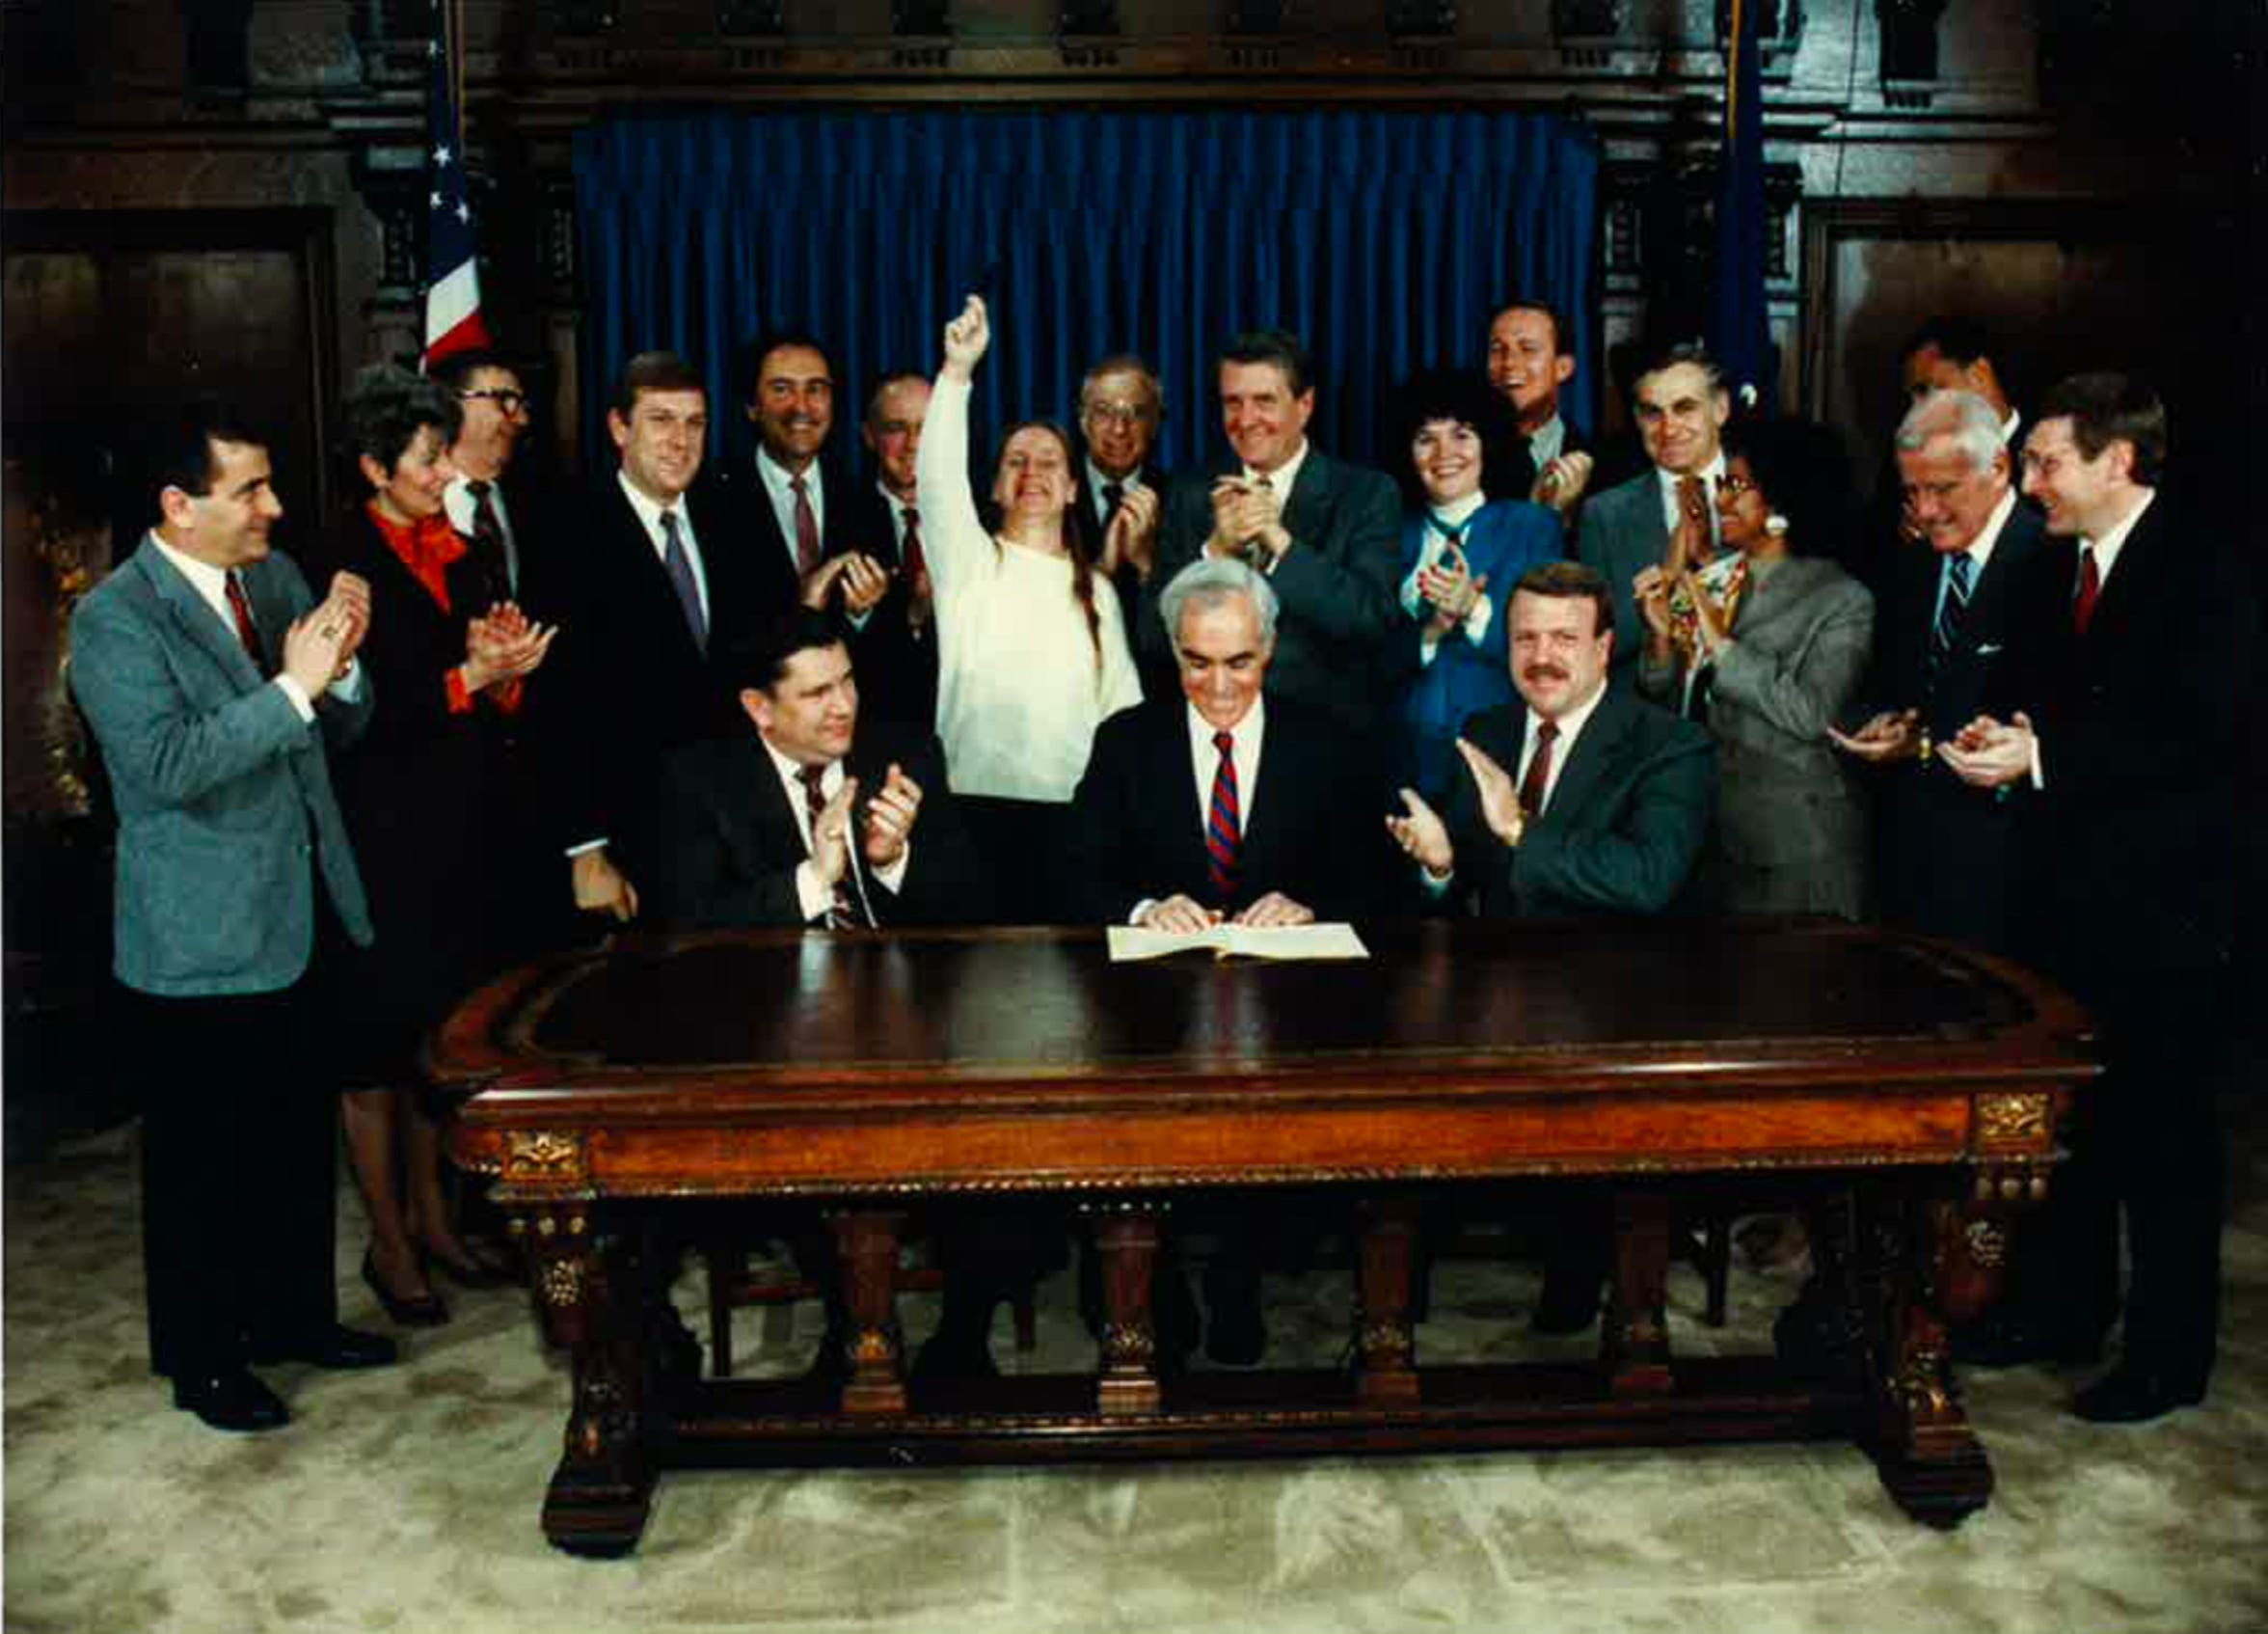 Deb Beck, center back, celebrates as Gov. Bob Casey Sr., center front, signed Act 152 into law in 1988. The law required public insurance to cover drug and alcohol addiction treatment, an expansion of a previous law championed by Beck.